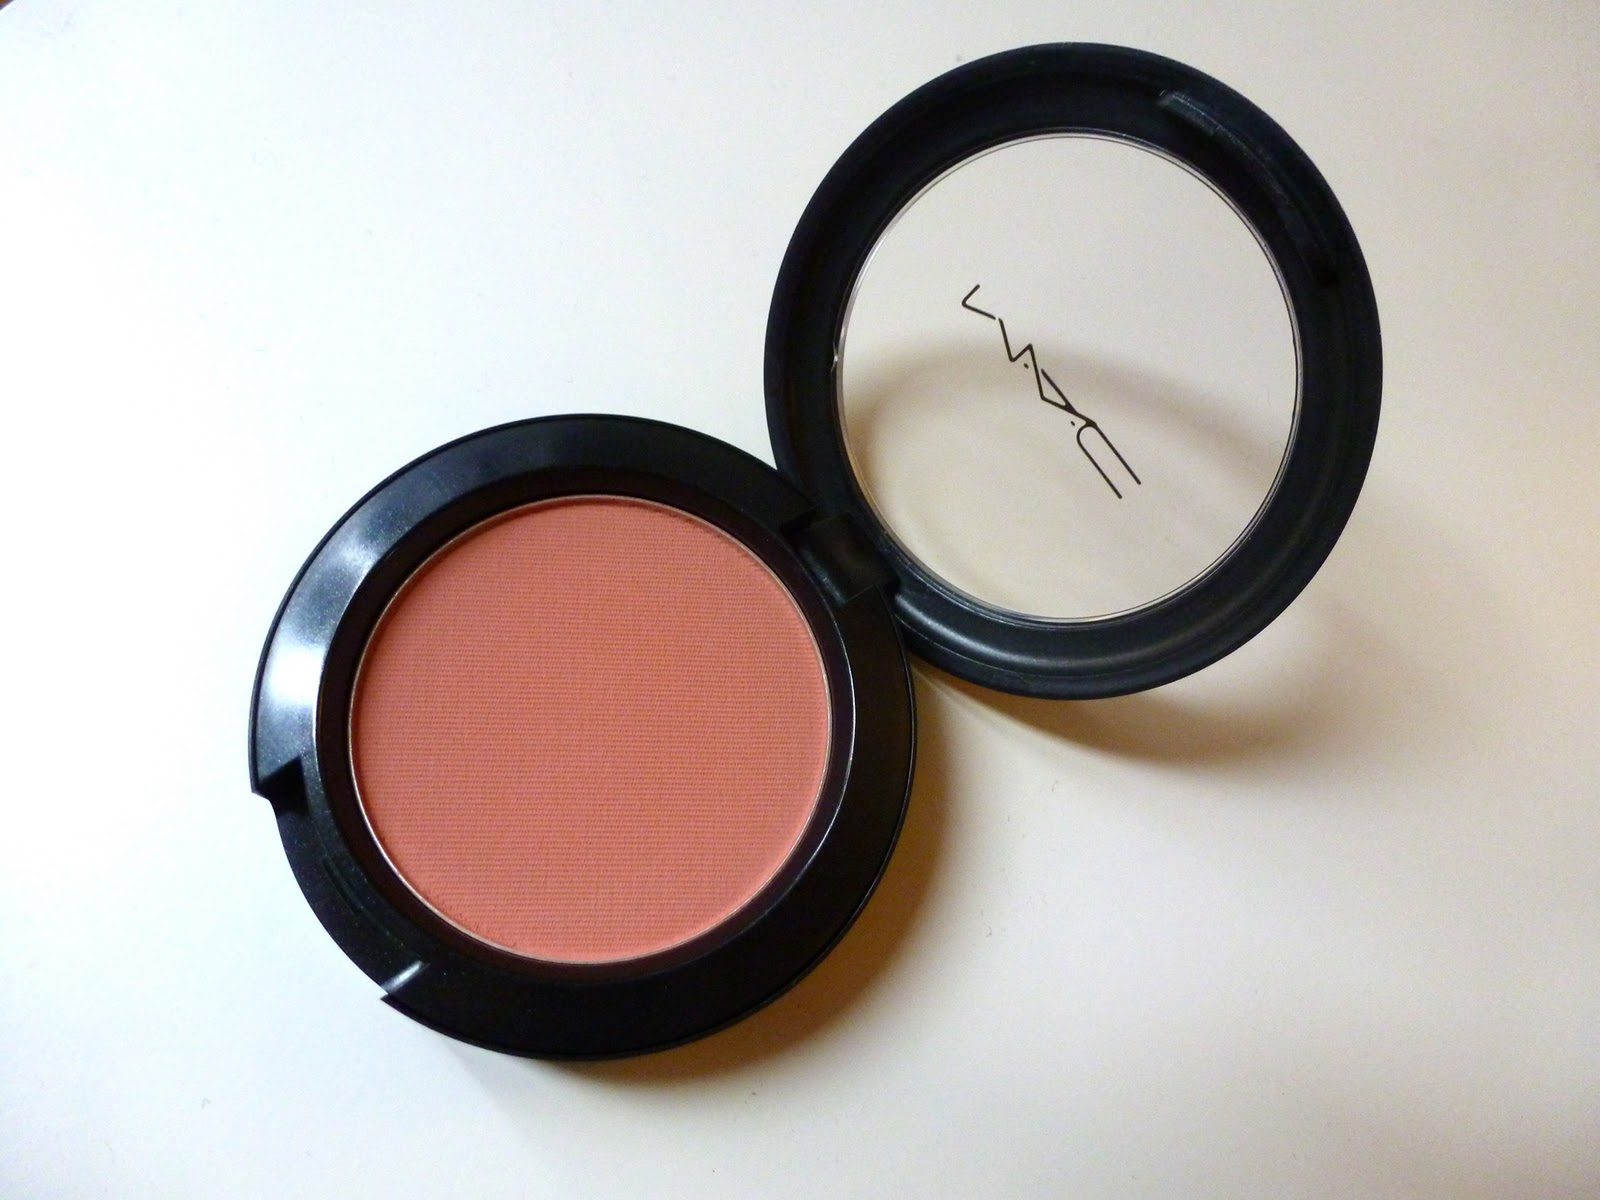 Little_wood :: UK Lifestyle & Beauty Blog: MAC Melba Blush